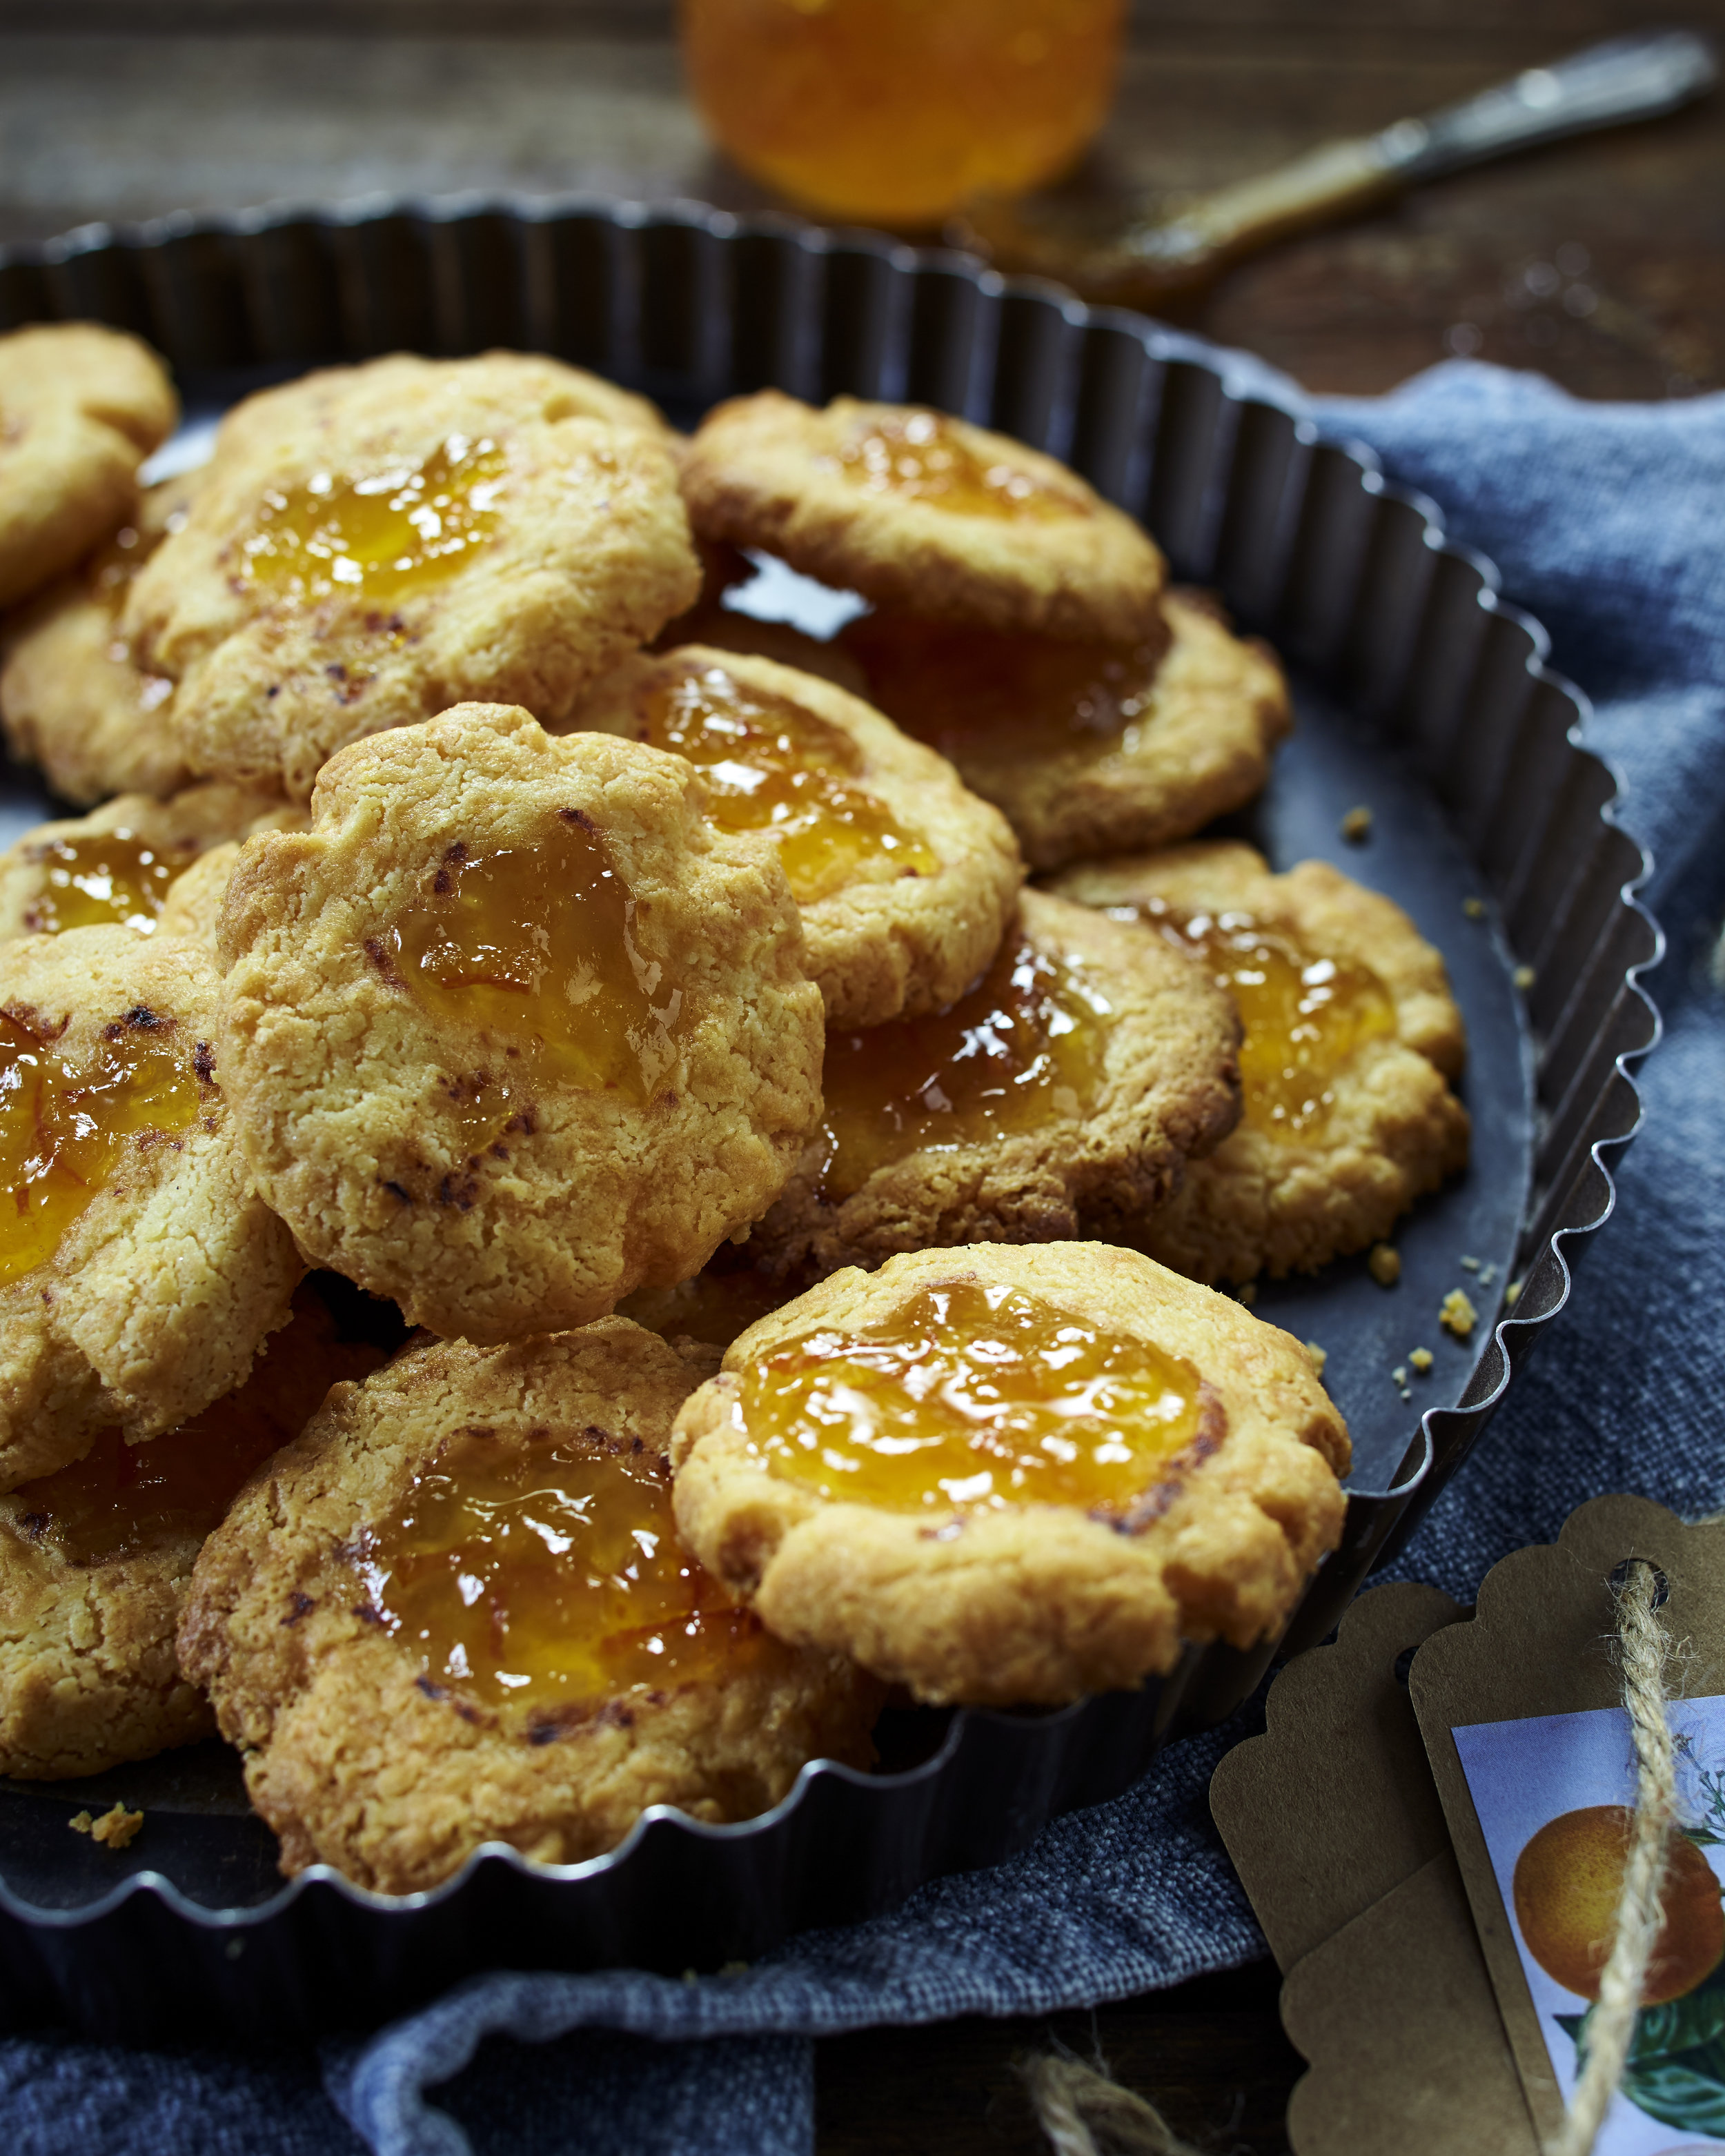 Cheese and marmalade savoury biscuits, recipe from LandScape magazine Jan/Feb 2018 issue.